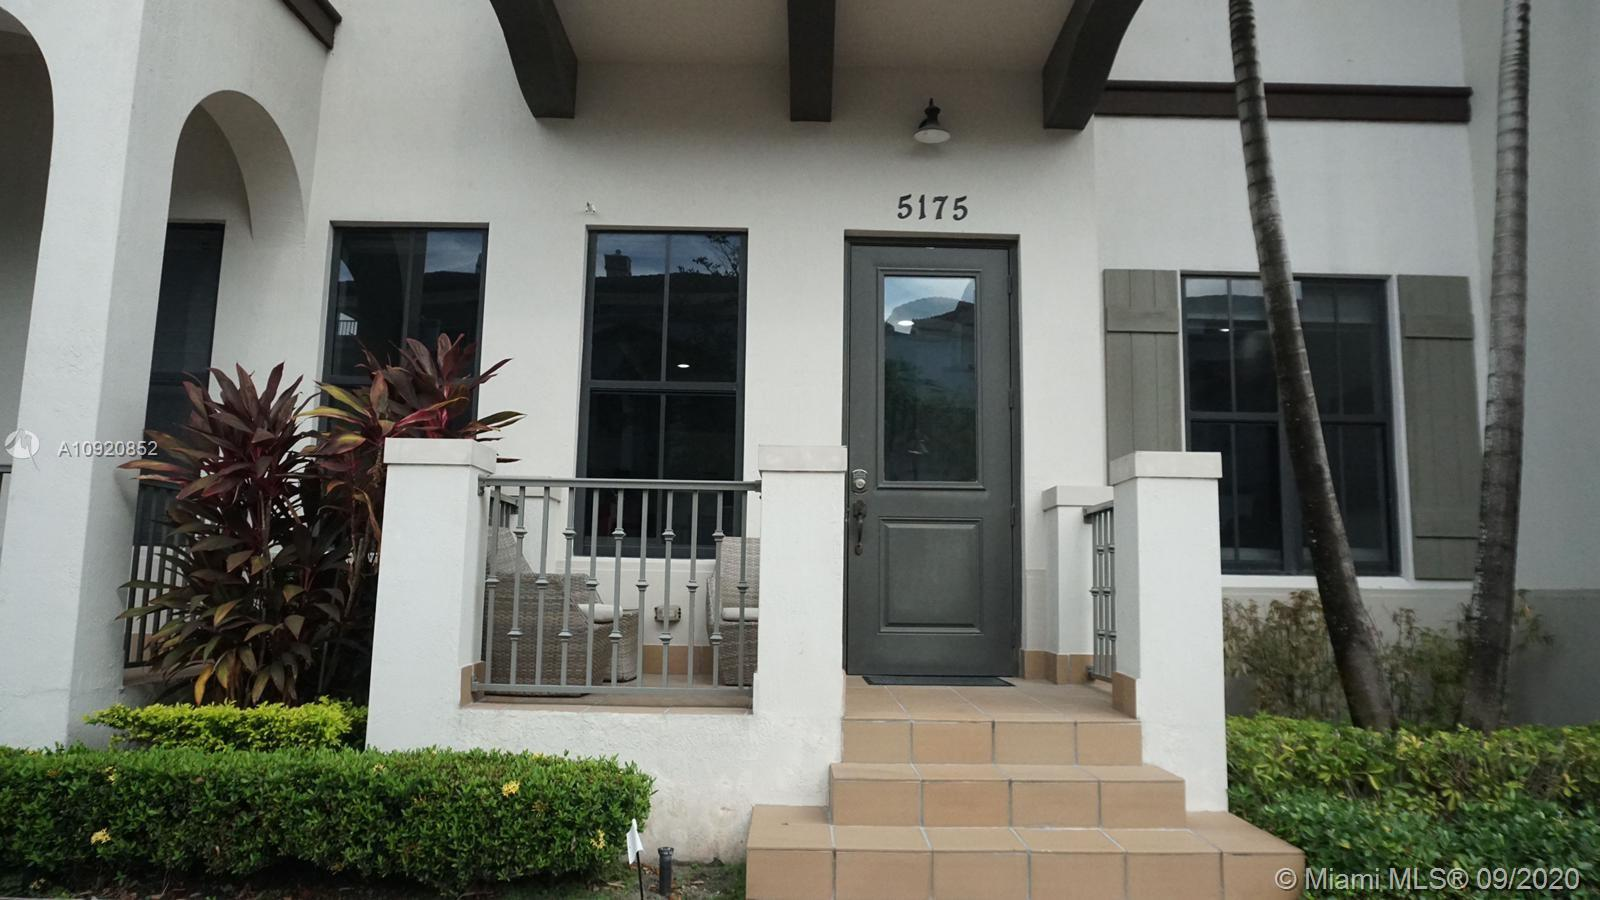 Spectacular 2-story townhome located in exclusive Downtown Doral. This unit features 3 bedrooms, 2.5 bathrooms, beautiful laminate waterproof  floors downstairs & upstairs. Open and modern kitchen with granite countertops and top of the line appliances. Impact windows and doors, 2 car garage, huge laundry room, modern and more. Neighborhood features gorgeous club house and pool, A+ rated schools, lots of recreational areas for kids and family, restaurants, supermarkets, etc. Call us today and arrange an appointment!